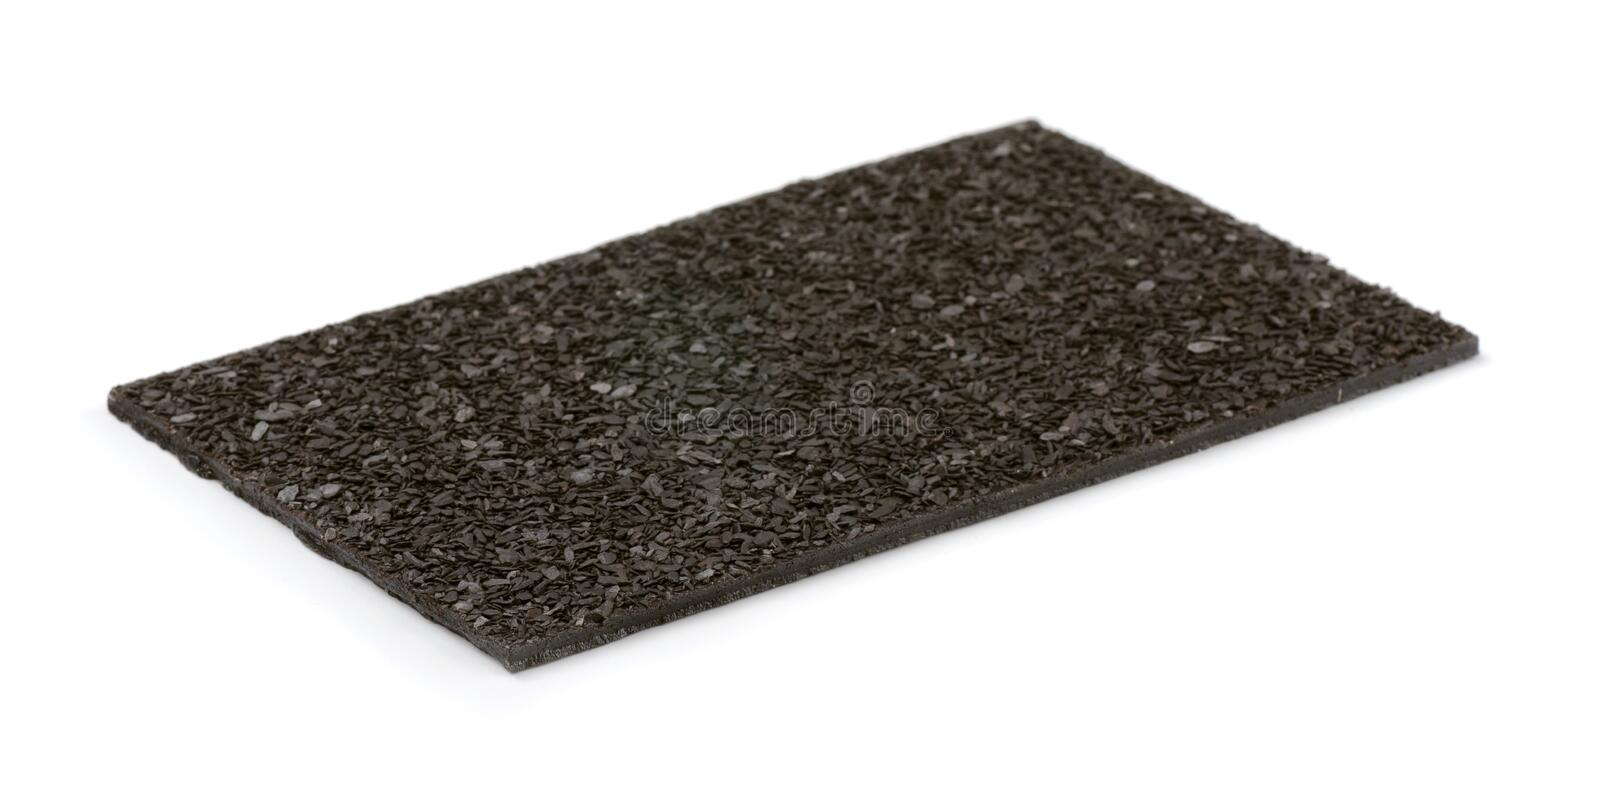 Download Roof shingle stock image. Image of industry, object, background - 29624519